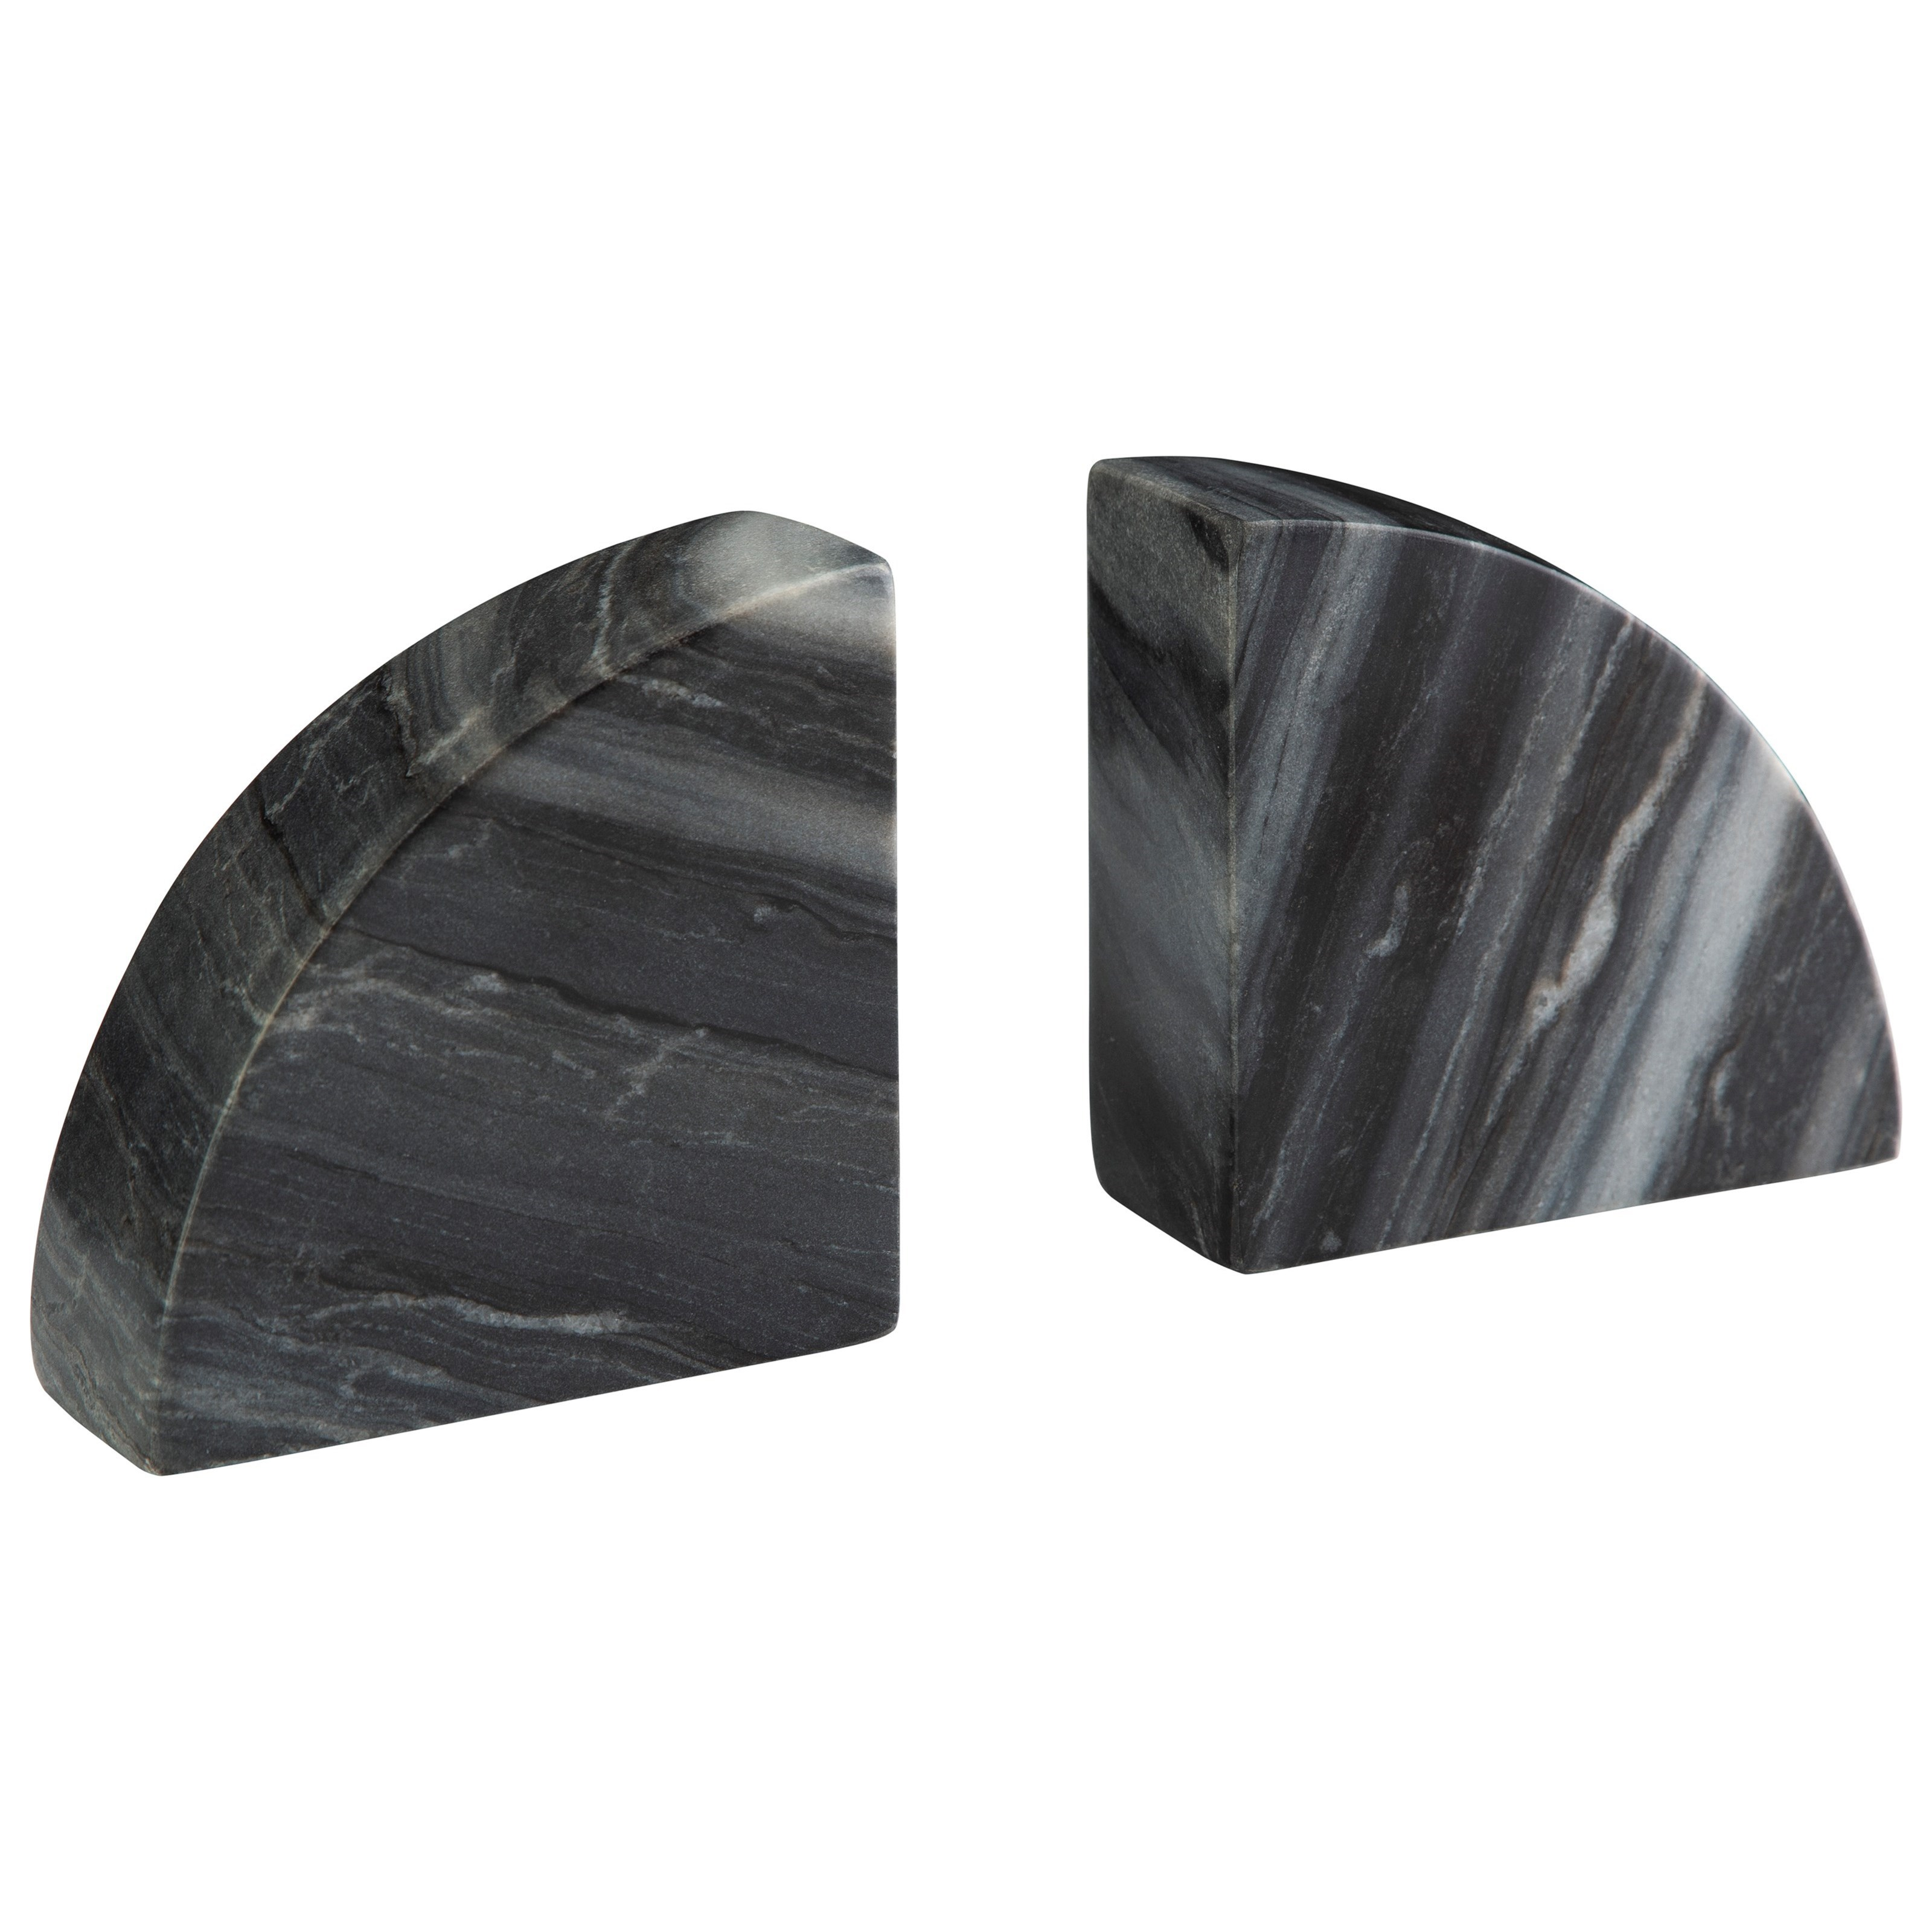 Accents Set of 2 Josetta Gray Marble Bookends by Signature Design by Ashley at Pilgrim Furniture City